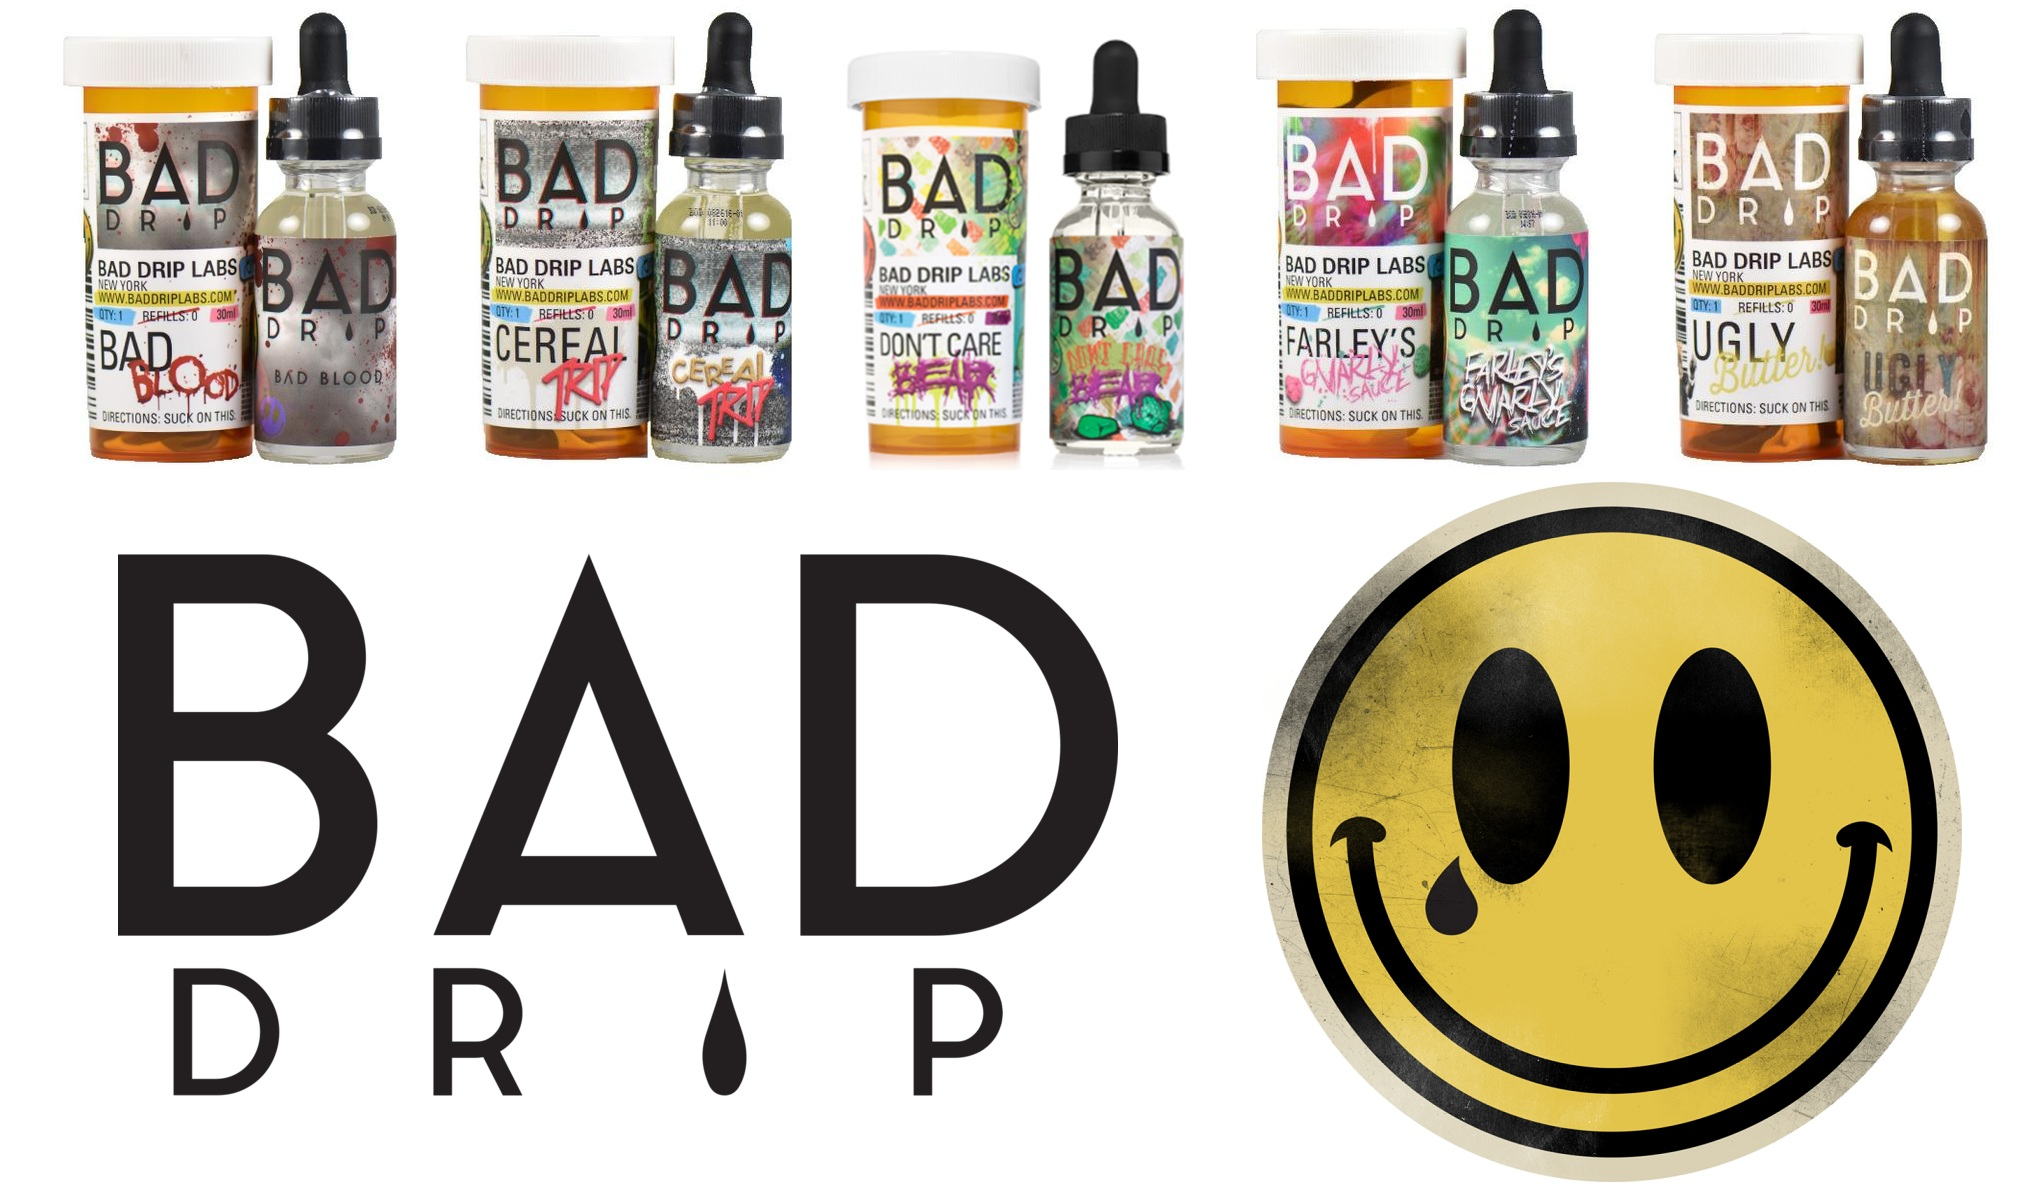 bad drip e liquid in Kansas City at Lets Vape and Smoke Shop